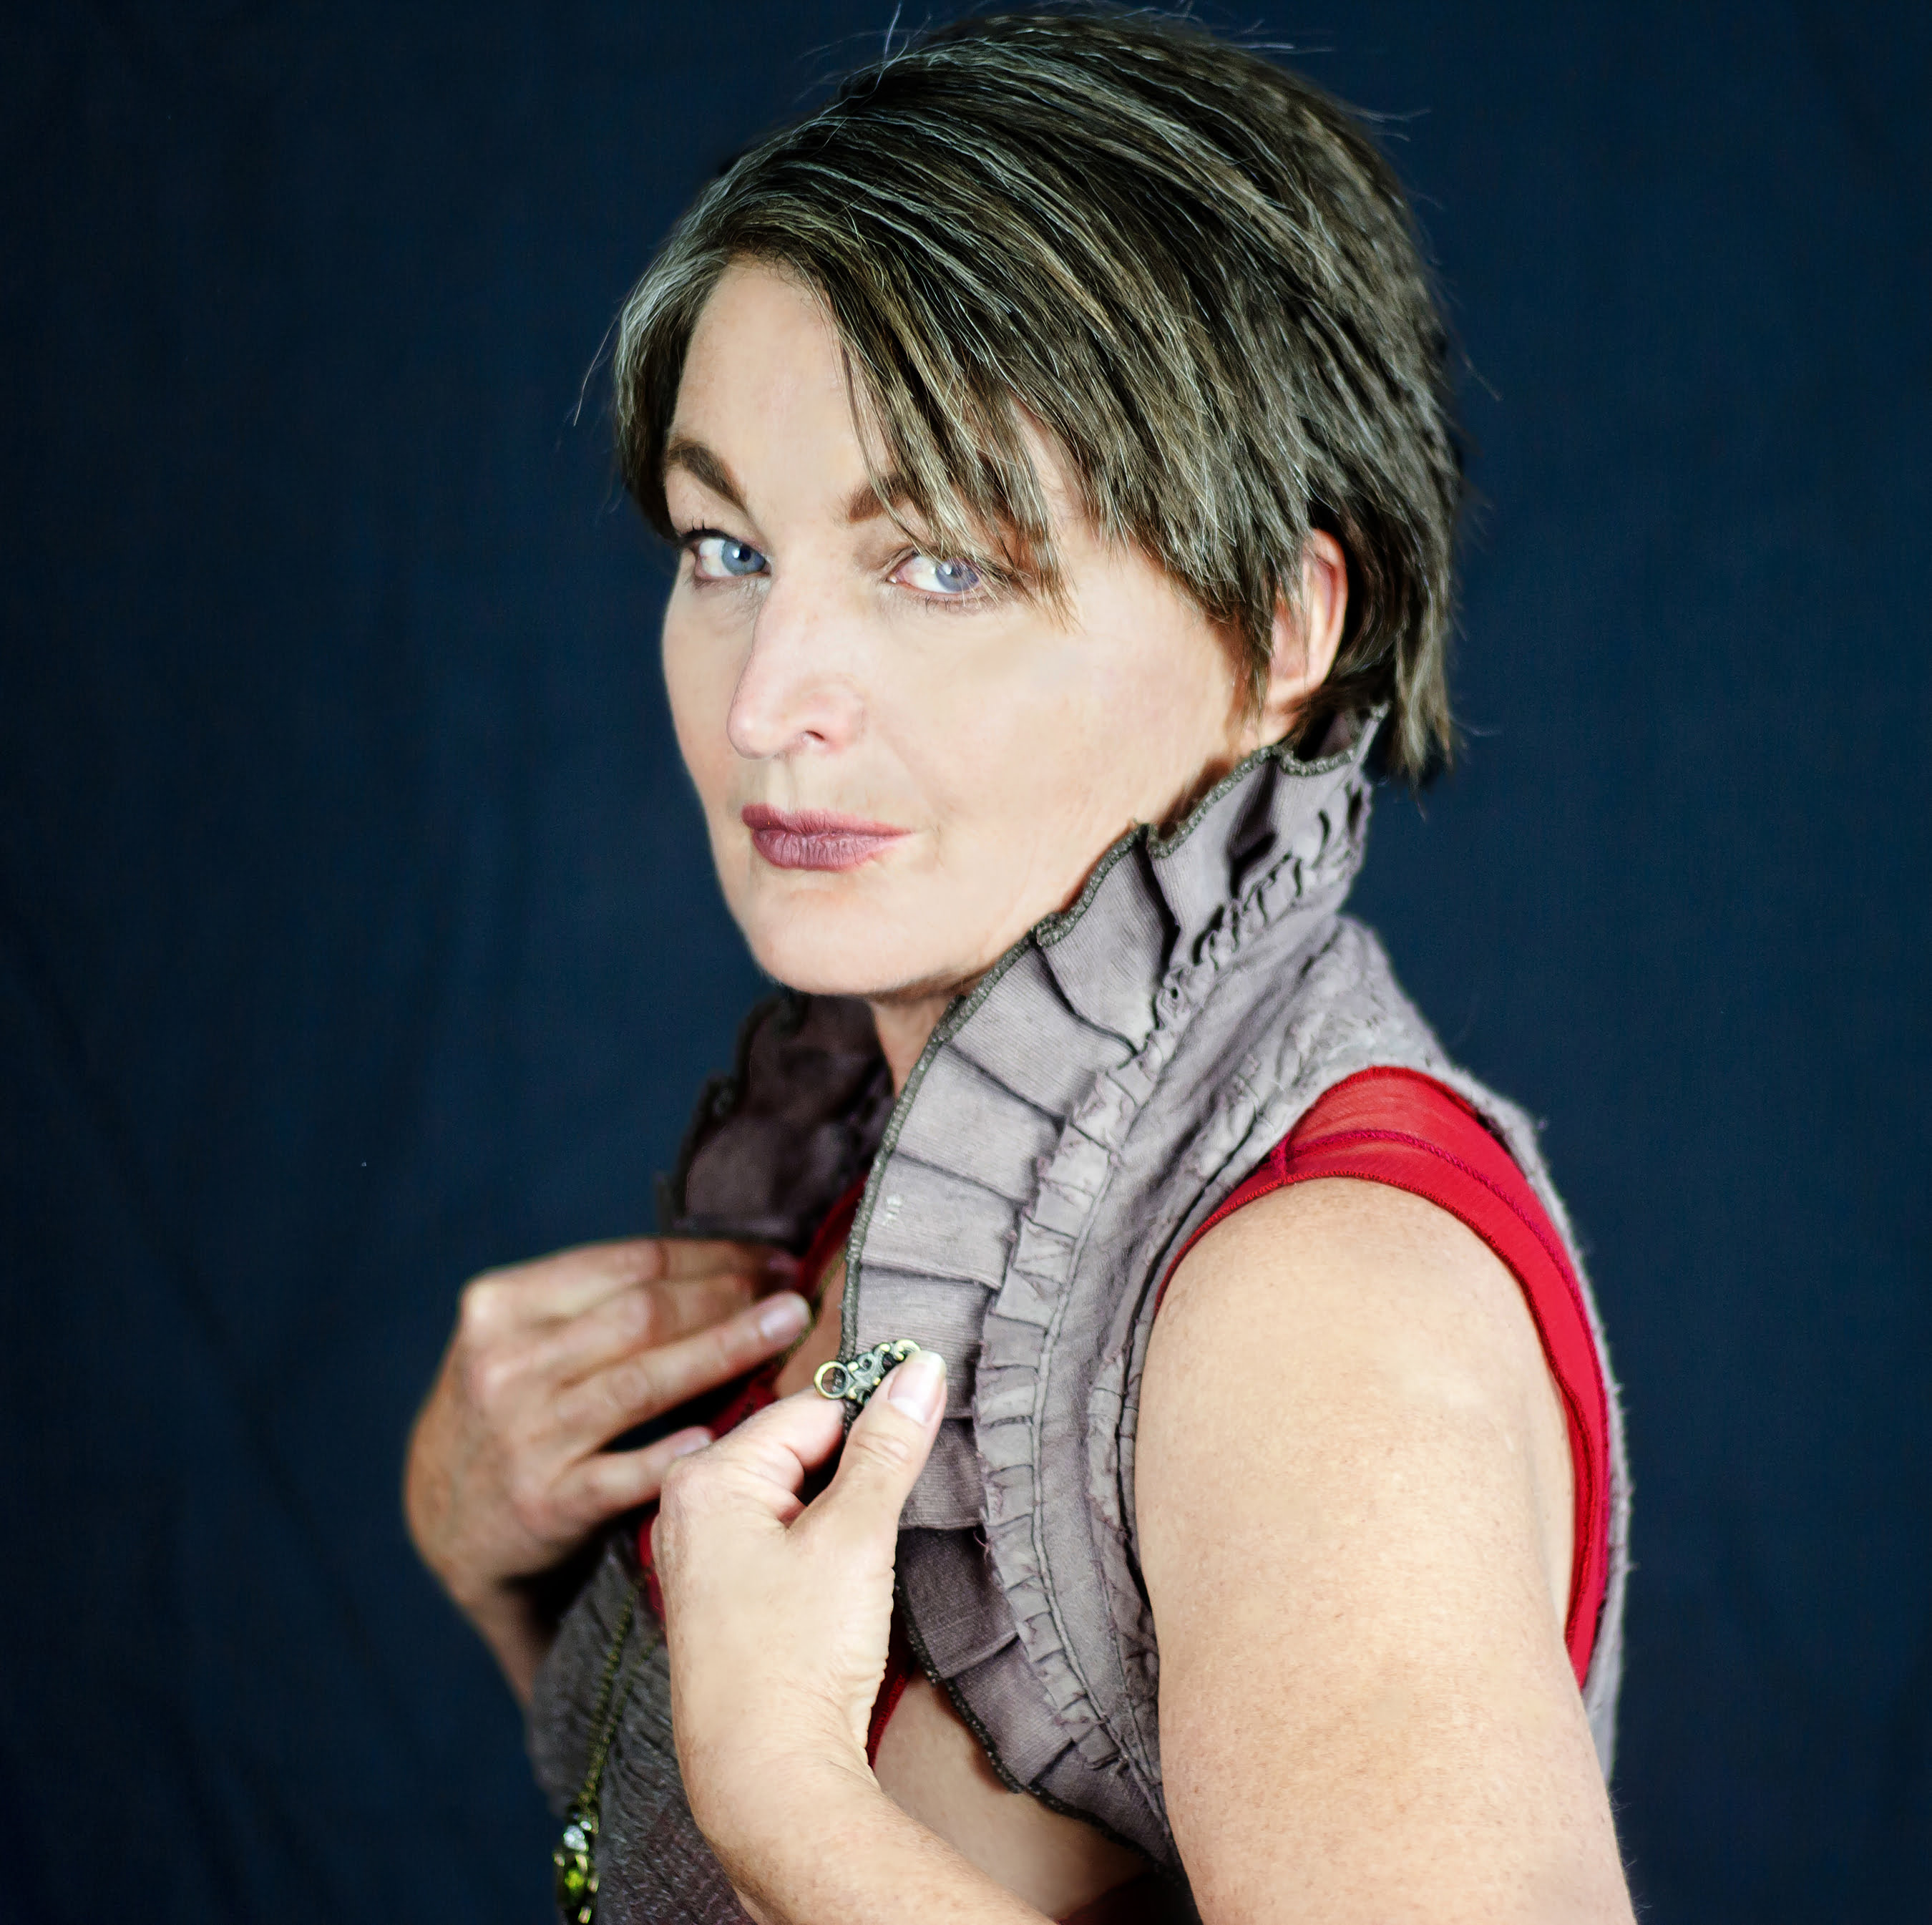 Jane Siberry plus support, Balsamo Deighton